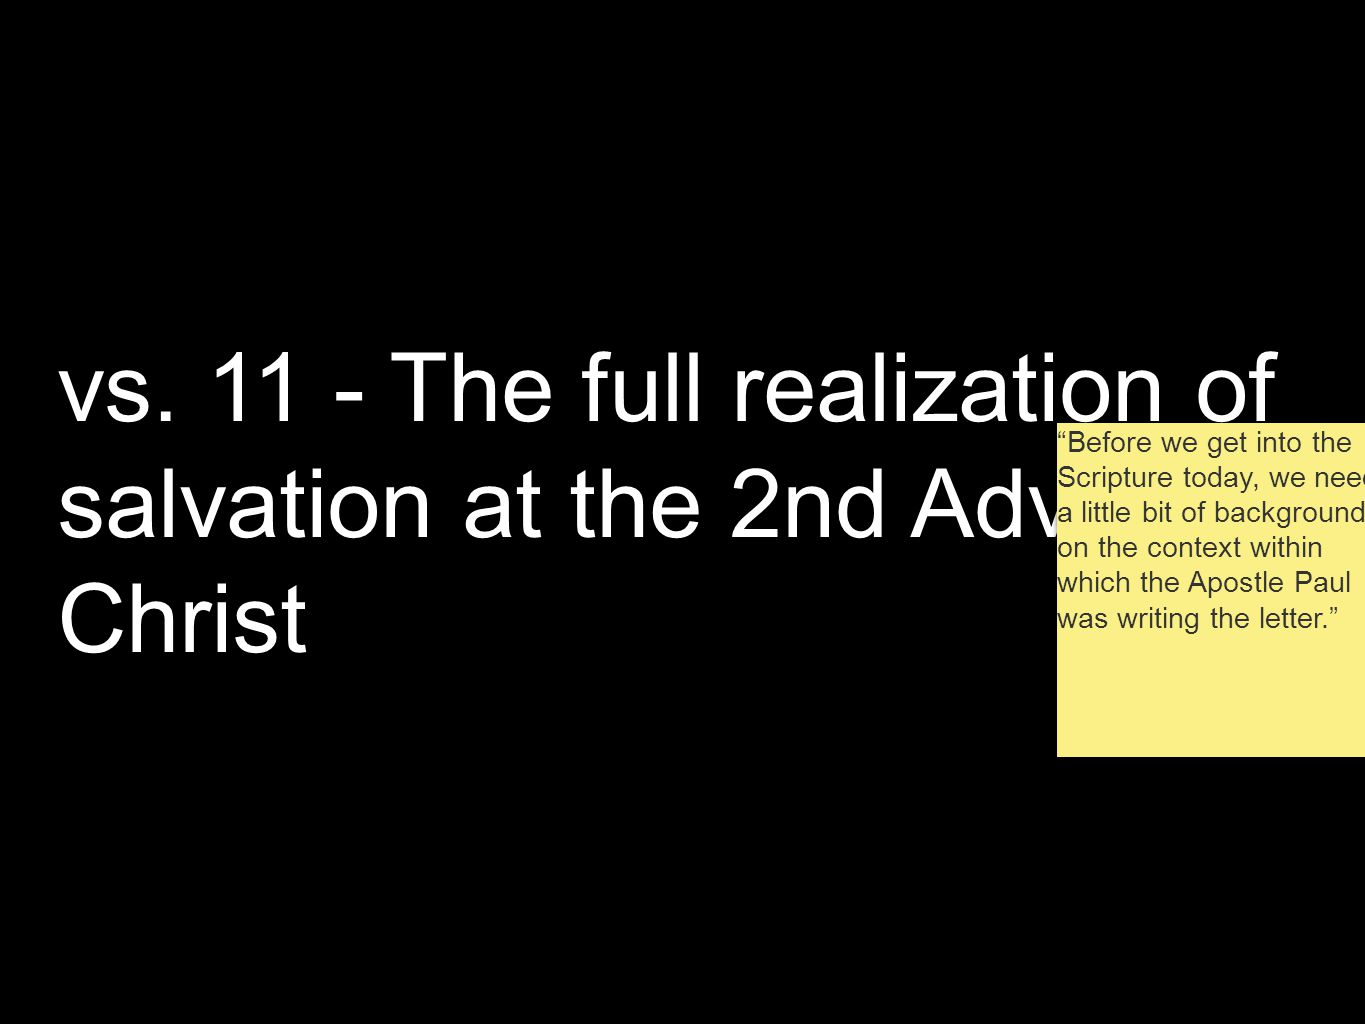 """vs. 11 - The full realization of salvation at the 2nd Advent of Christ """"Before we get into the Scripture today, we need a little bit of background on"""